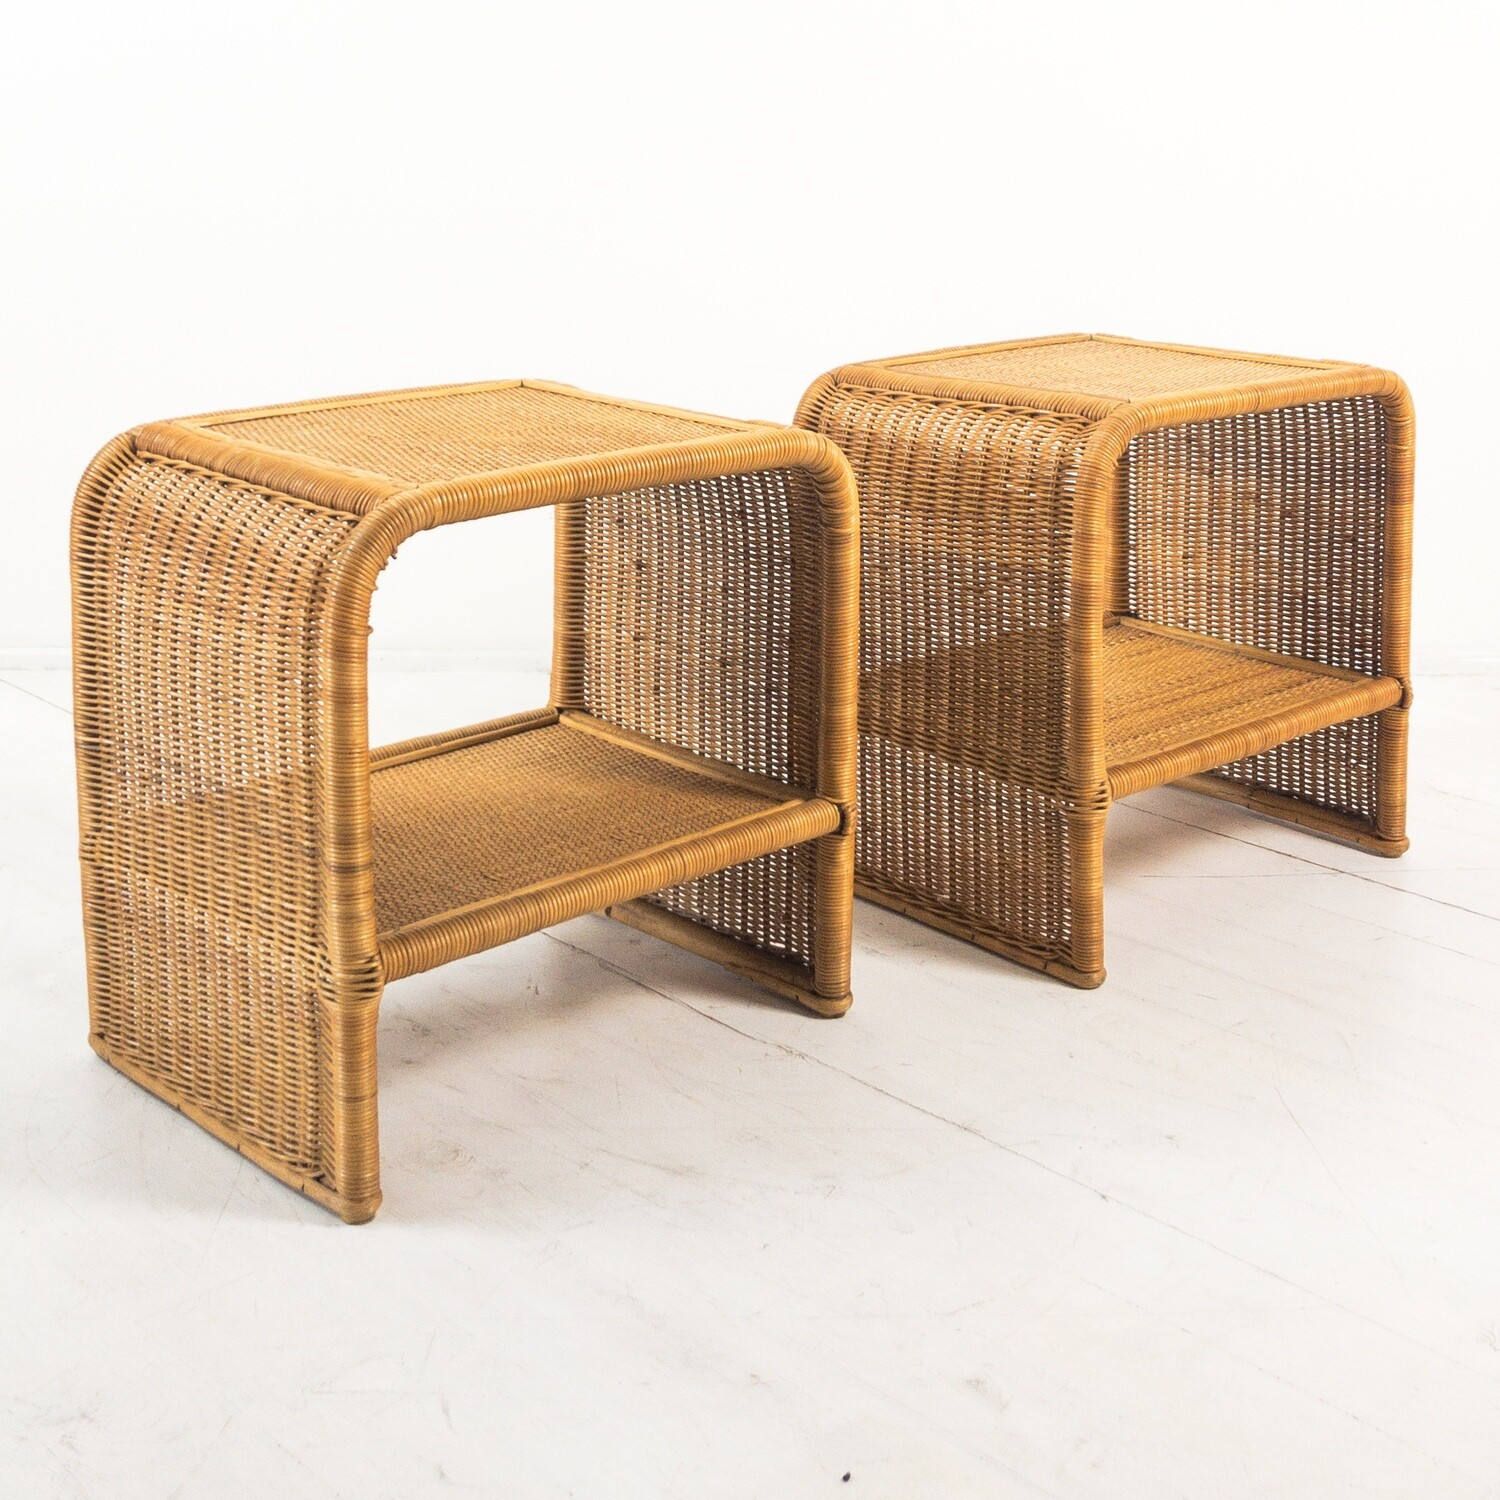 Pair of bamboo and wicker bedside tables from the 1970s